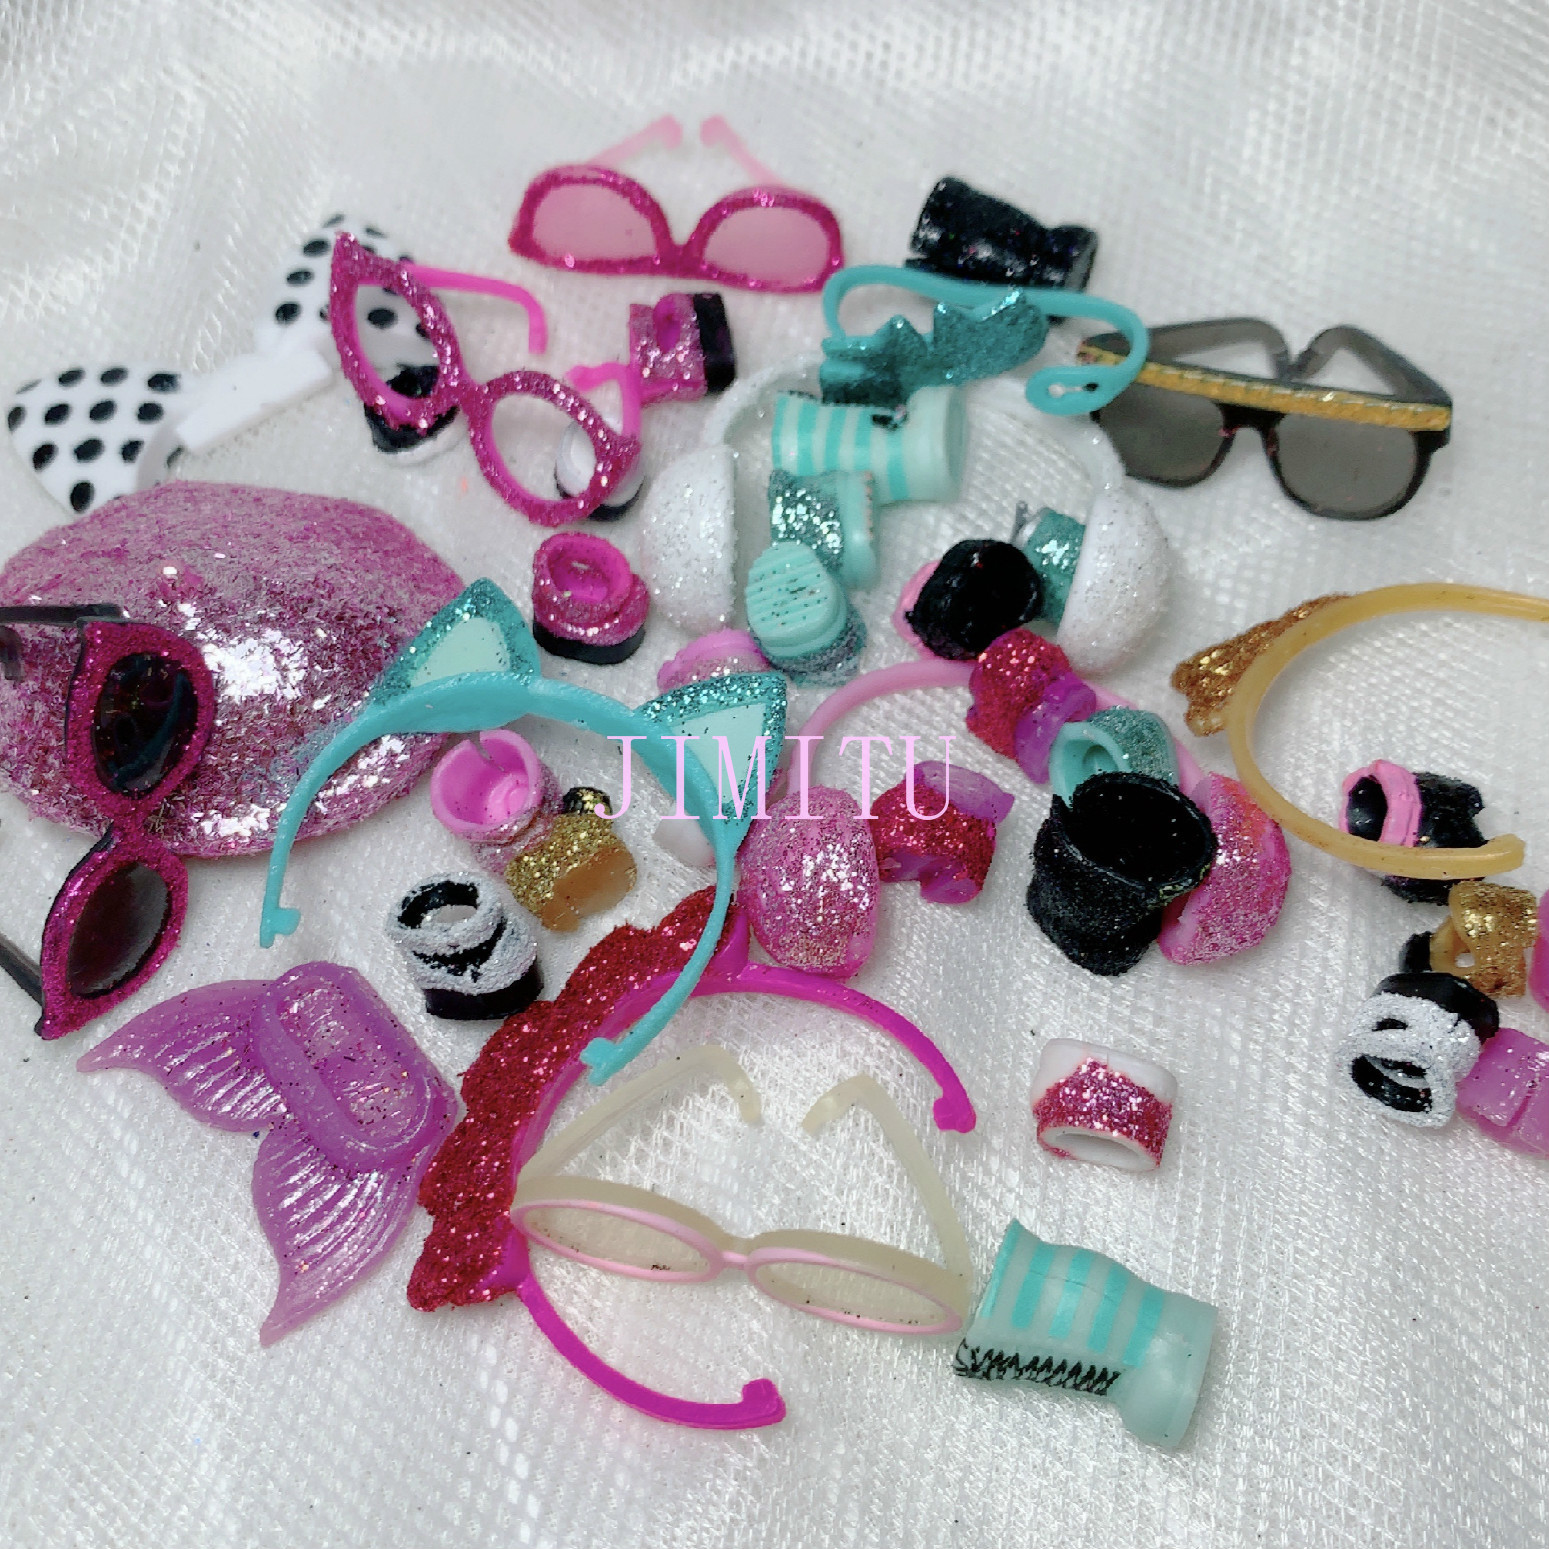 Original Shiny Lols Accessories Doll Toys For Glasses, Shoes And Headwear